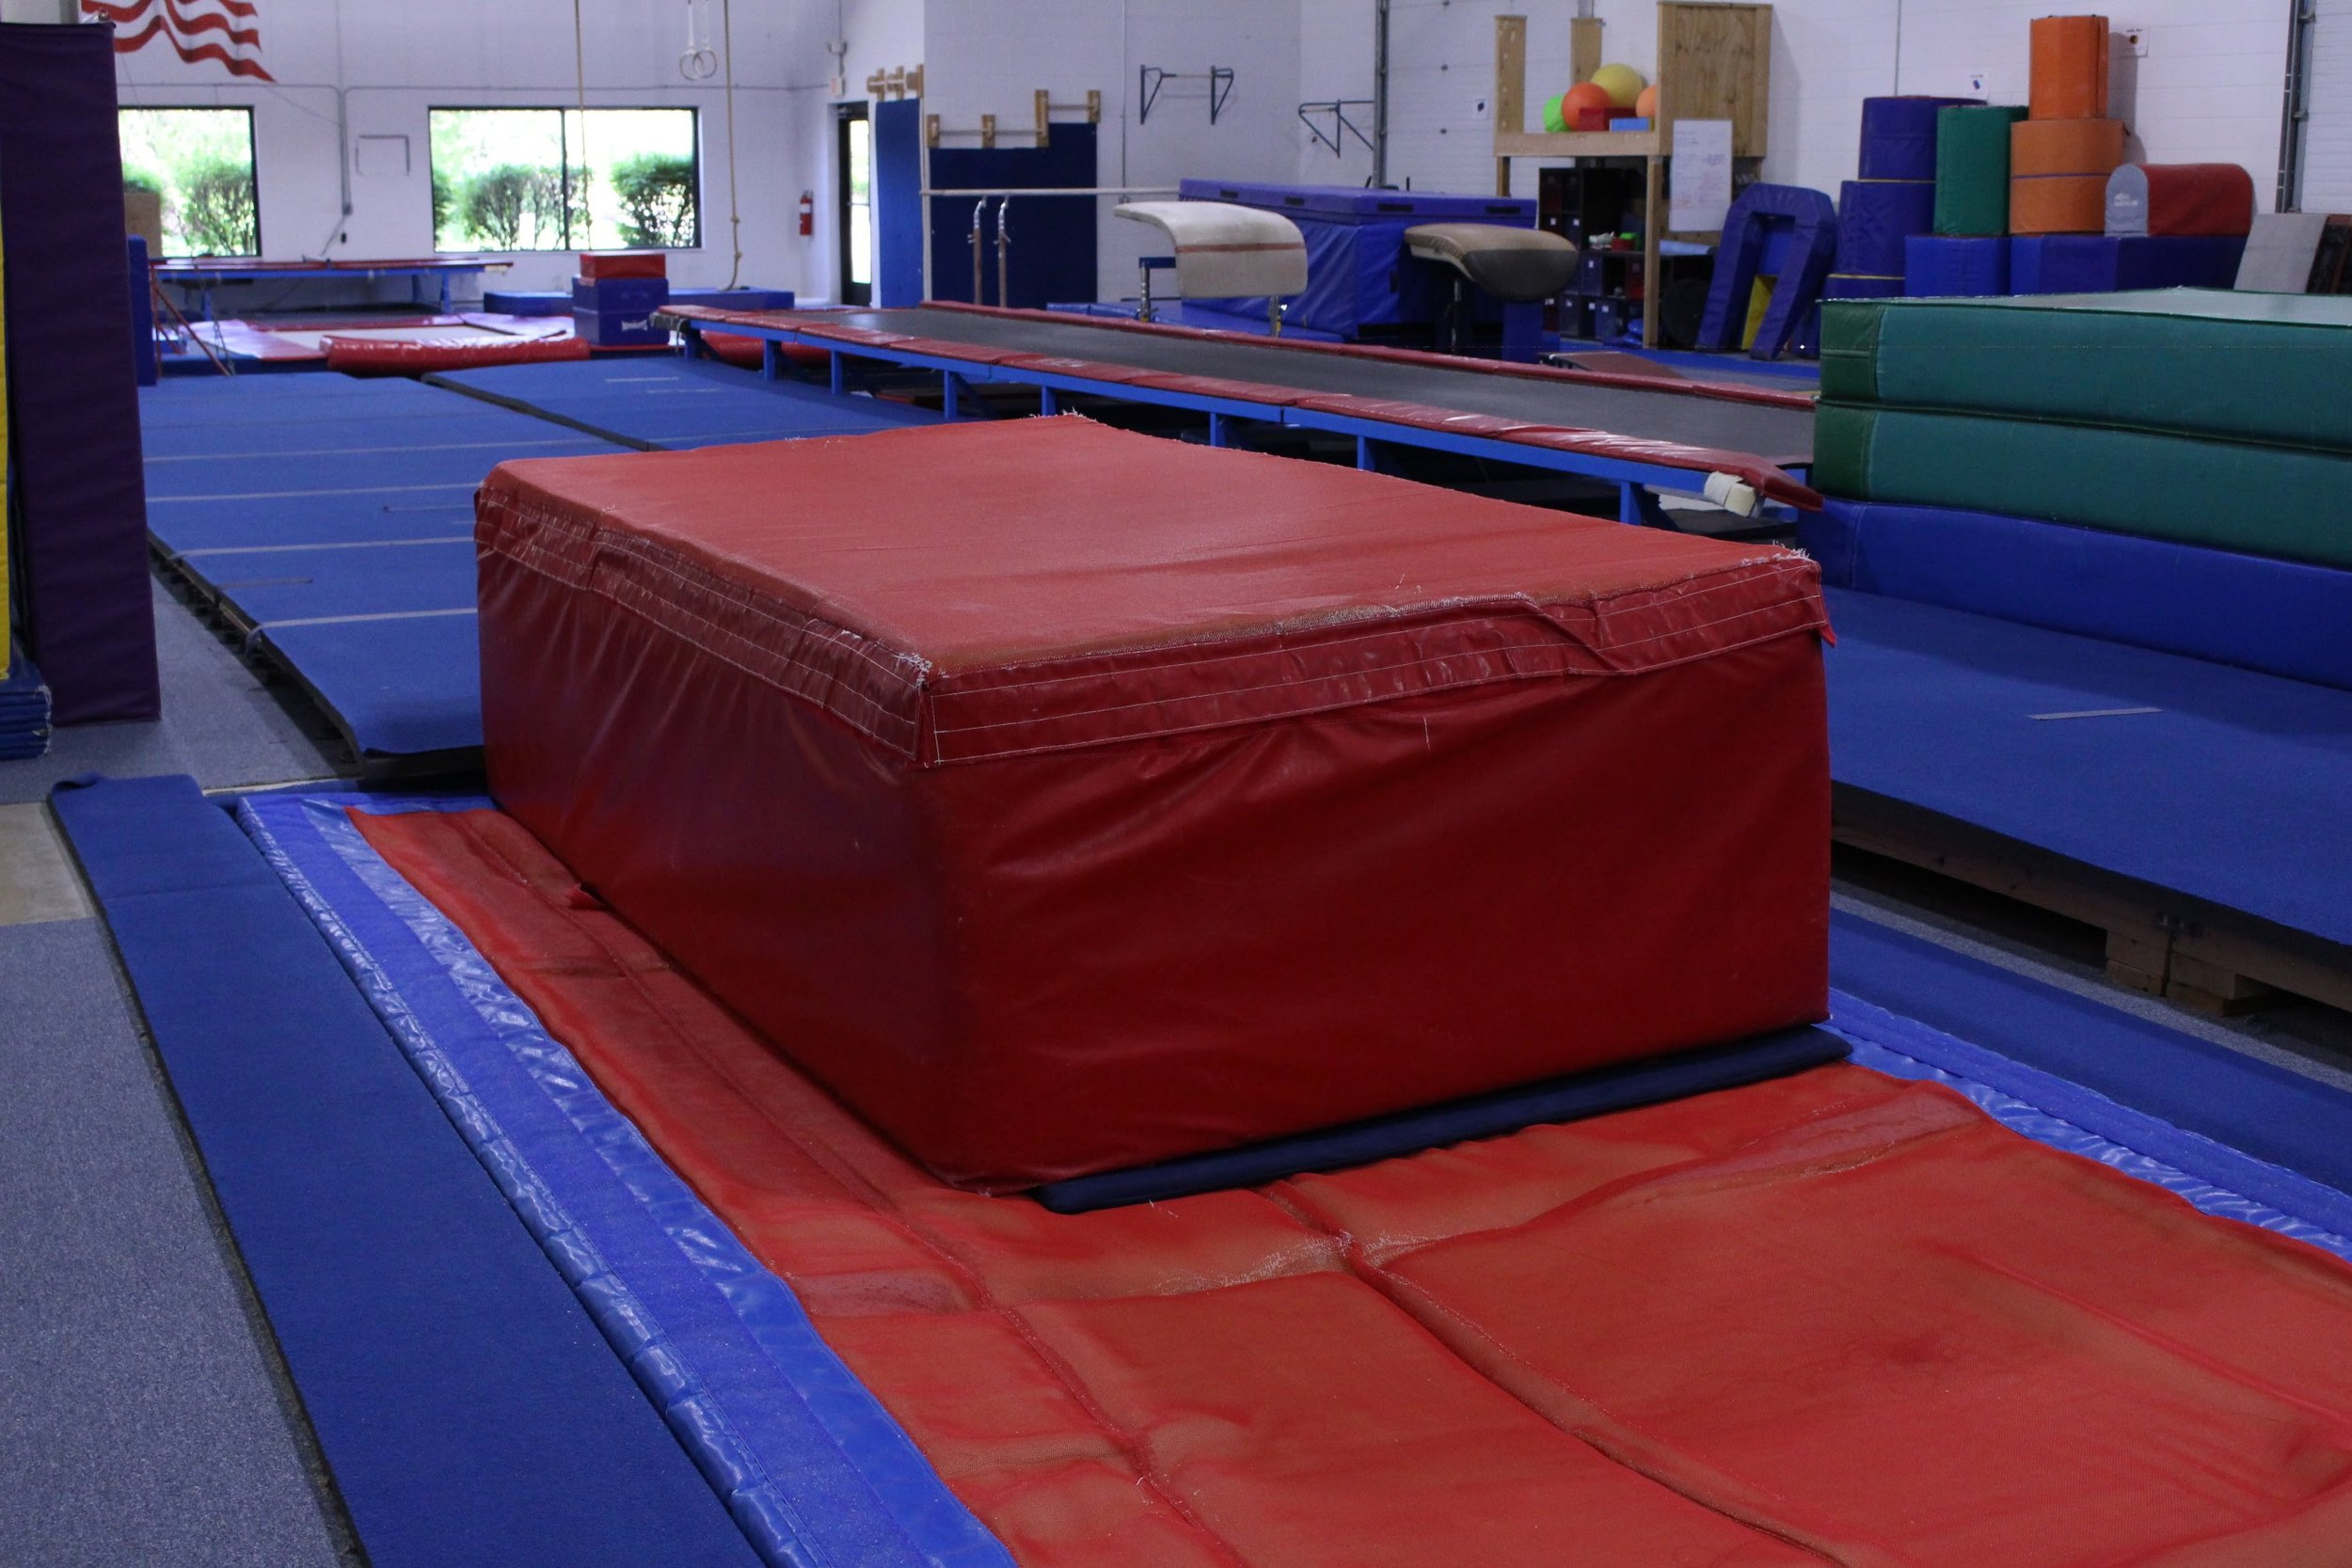 Recreational Classes - We offer noncompetitive gymnastics classes for beginners all the way to advanced gymnasts aged 6-18. Students' skills and movements are periodically tested to determine their appropriate class level and when they should advance. They learn skills on the spring floor, uneven bars, balance beam, and vault. They also use the Tumbl Trak and trampoline.Learn More →